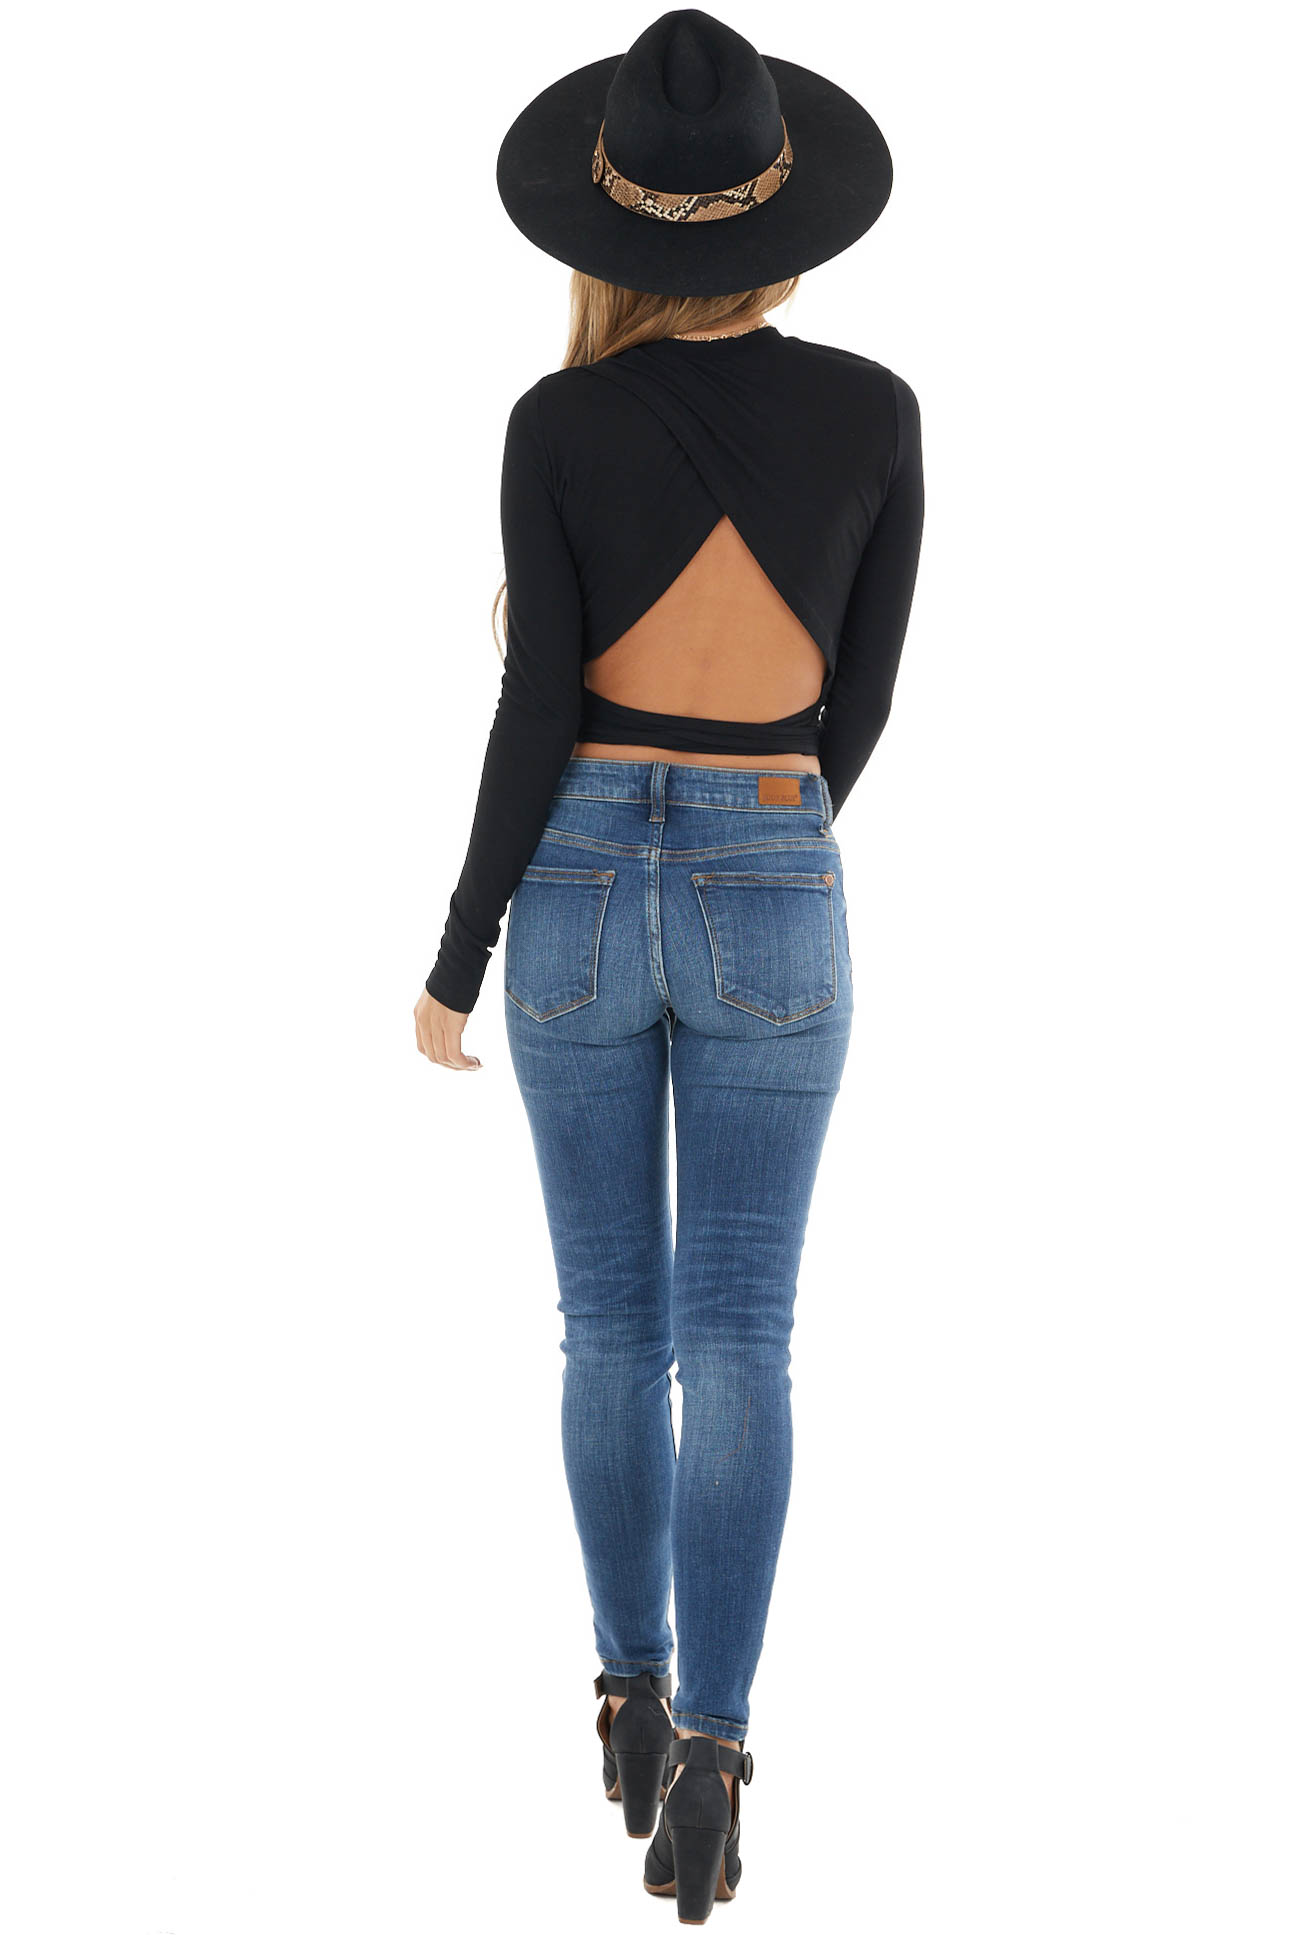 Black Long Sleeve Top with Open Back and Tie Detail